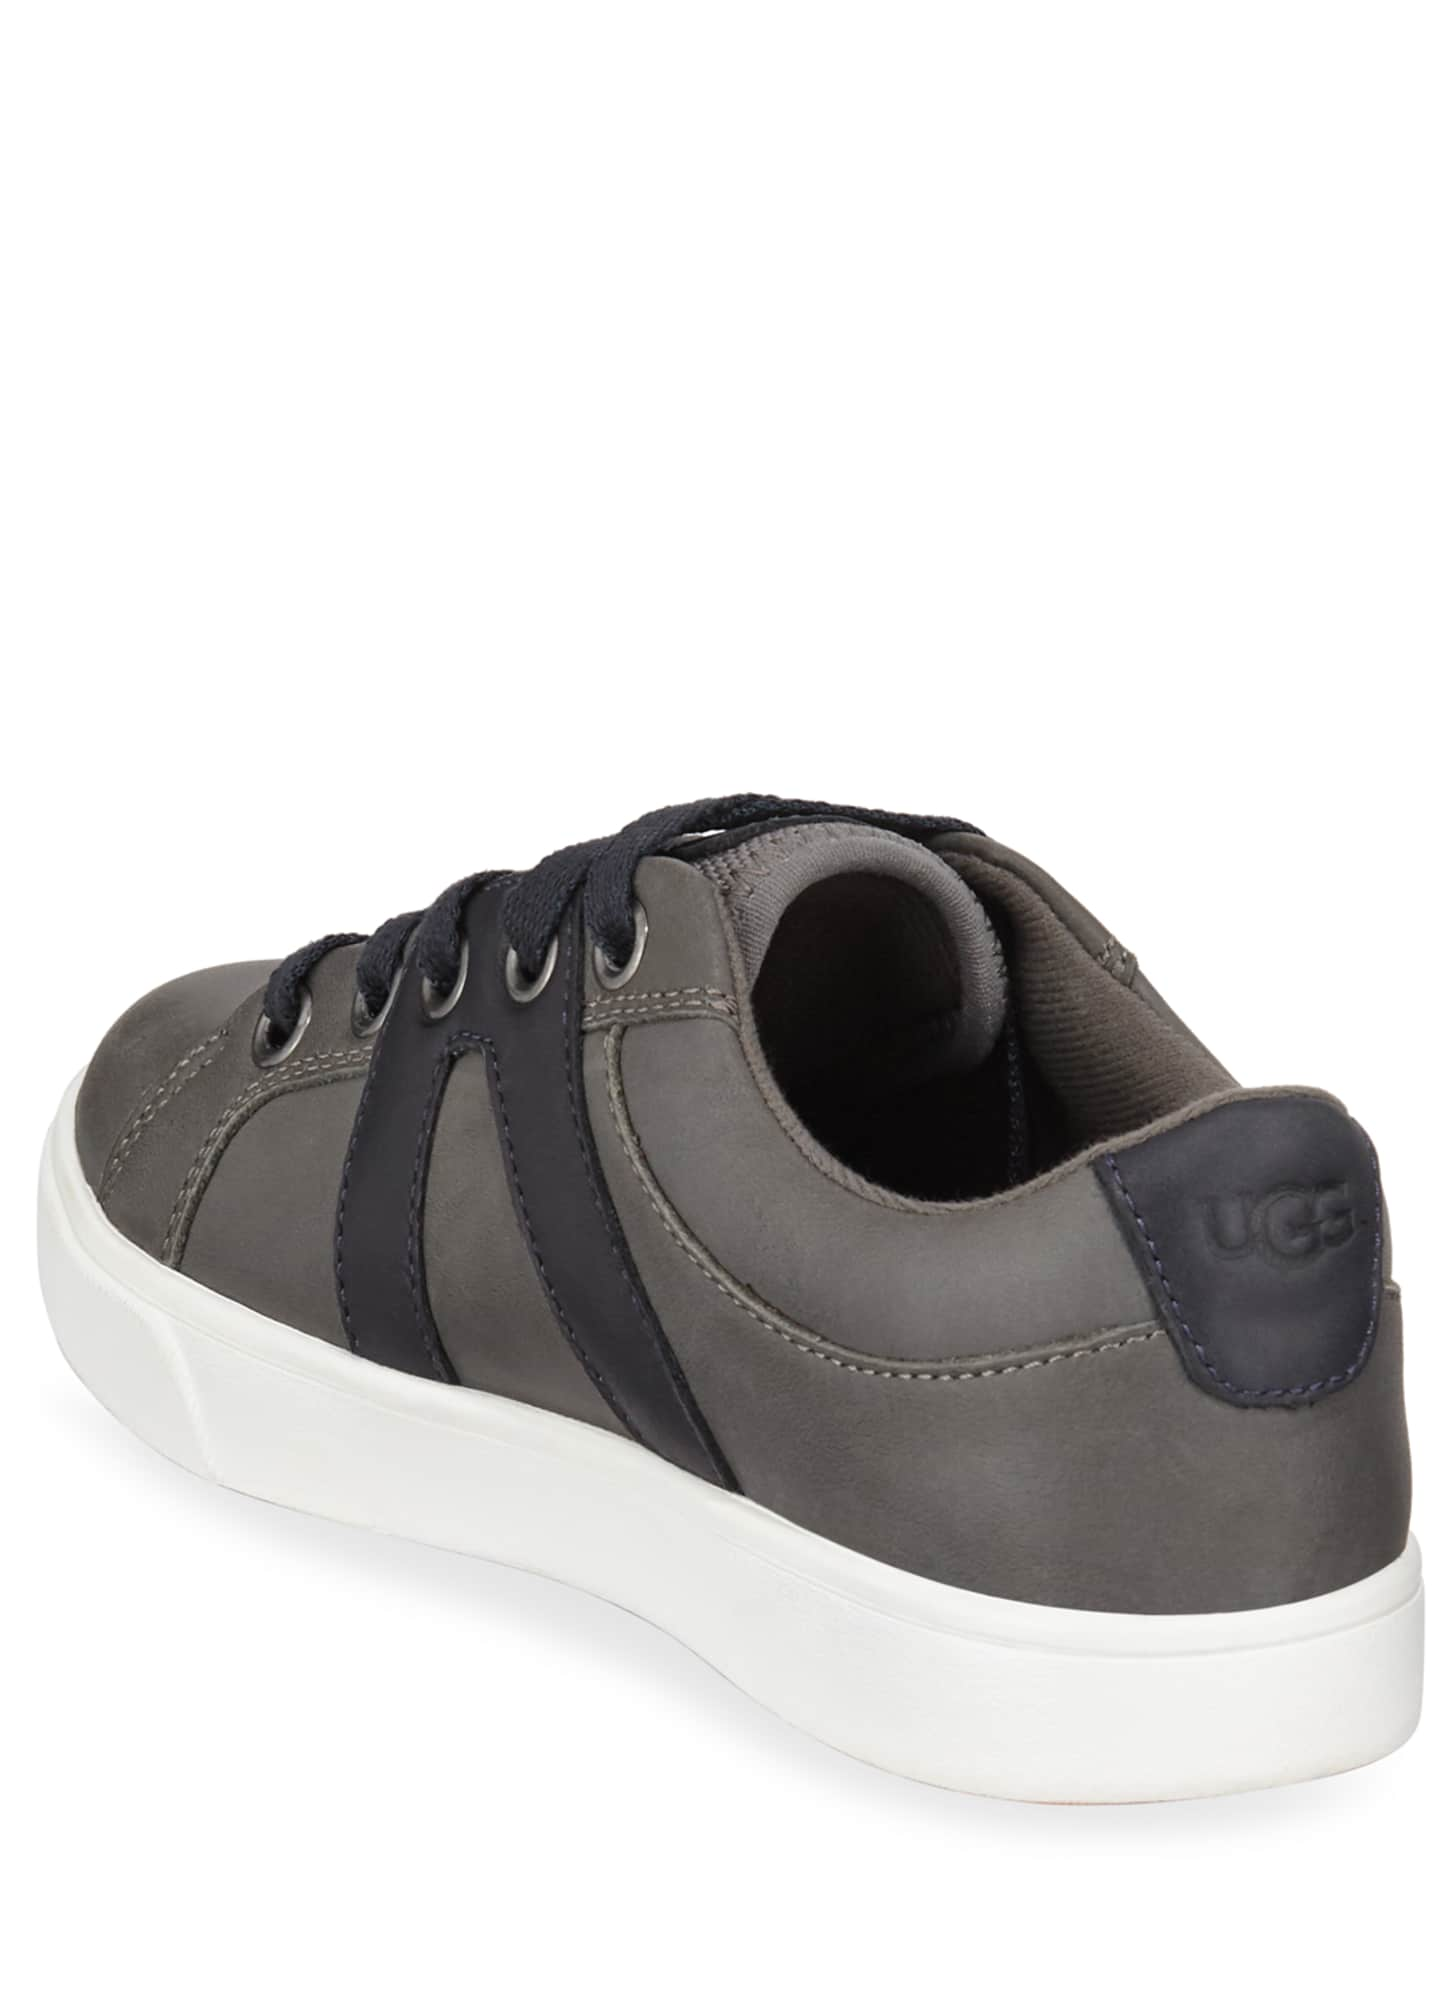 Image 4 of 4: Marcus Leather Sneakers, Toddler/Kids